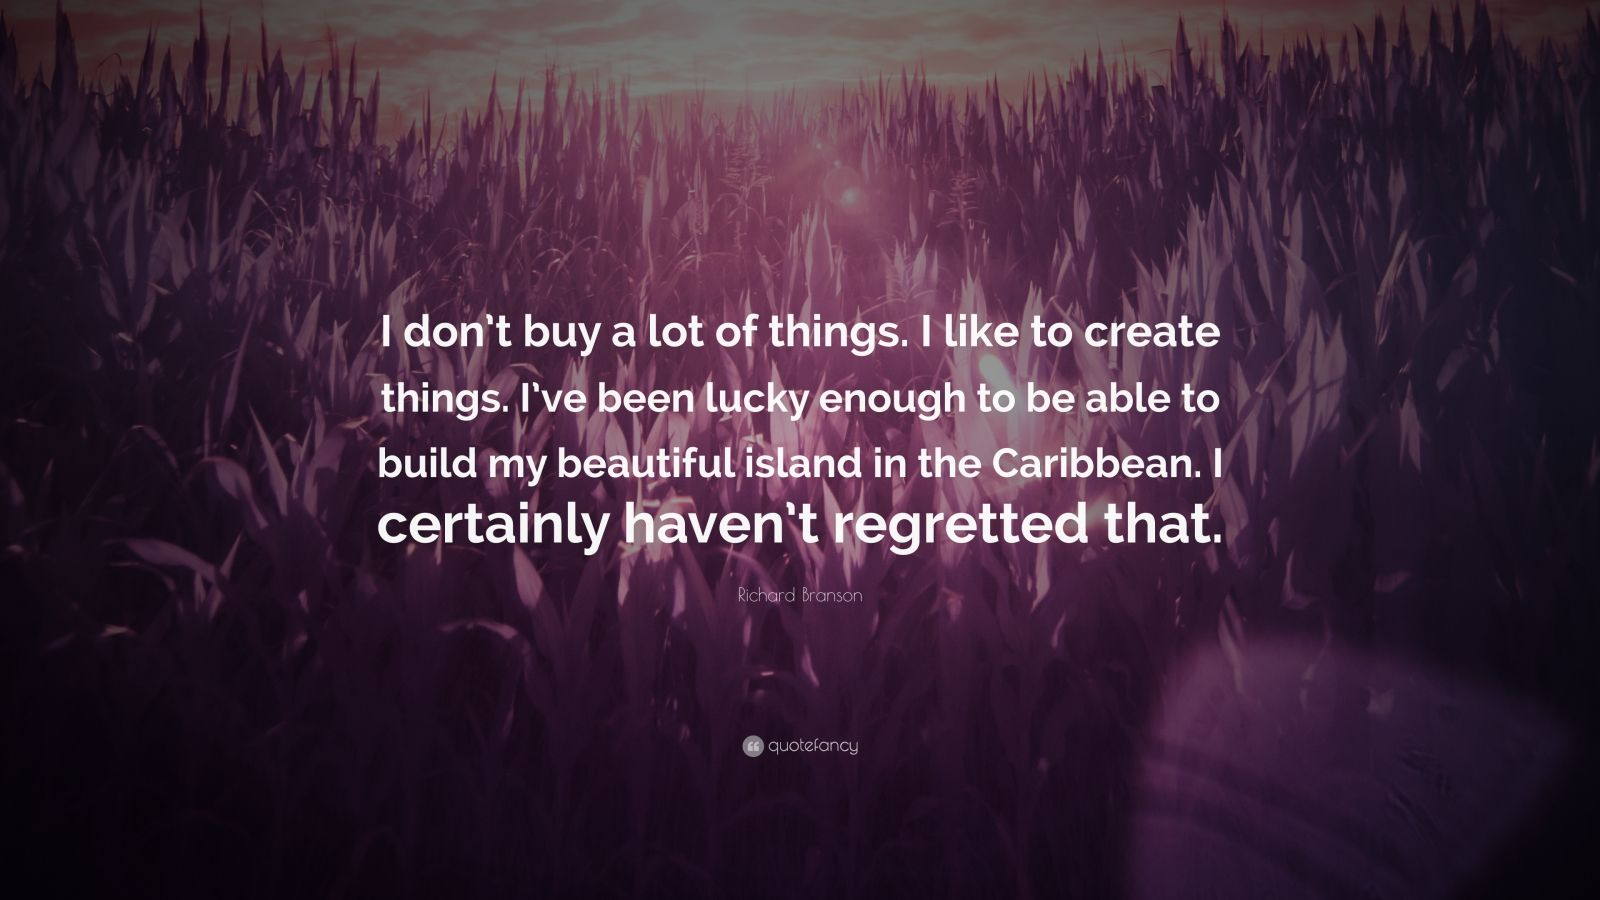 """Richard Branson Quote: """"I don't buy a lot of things. I like to create things. I've been lucky enough to be able to build my beautiful island in the Caribbean. I certainly haven't regretted that."""""""